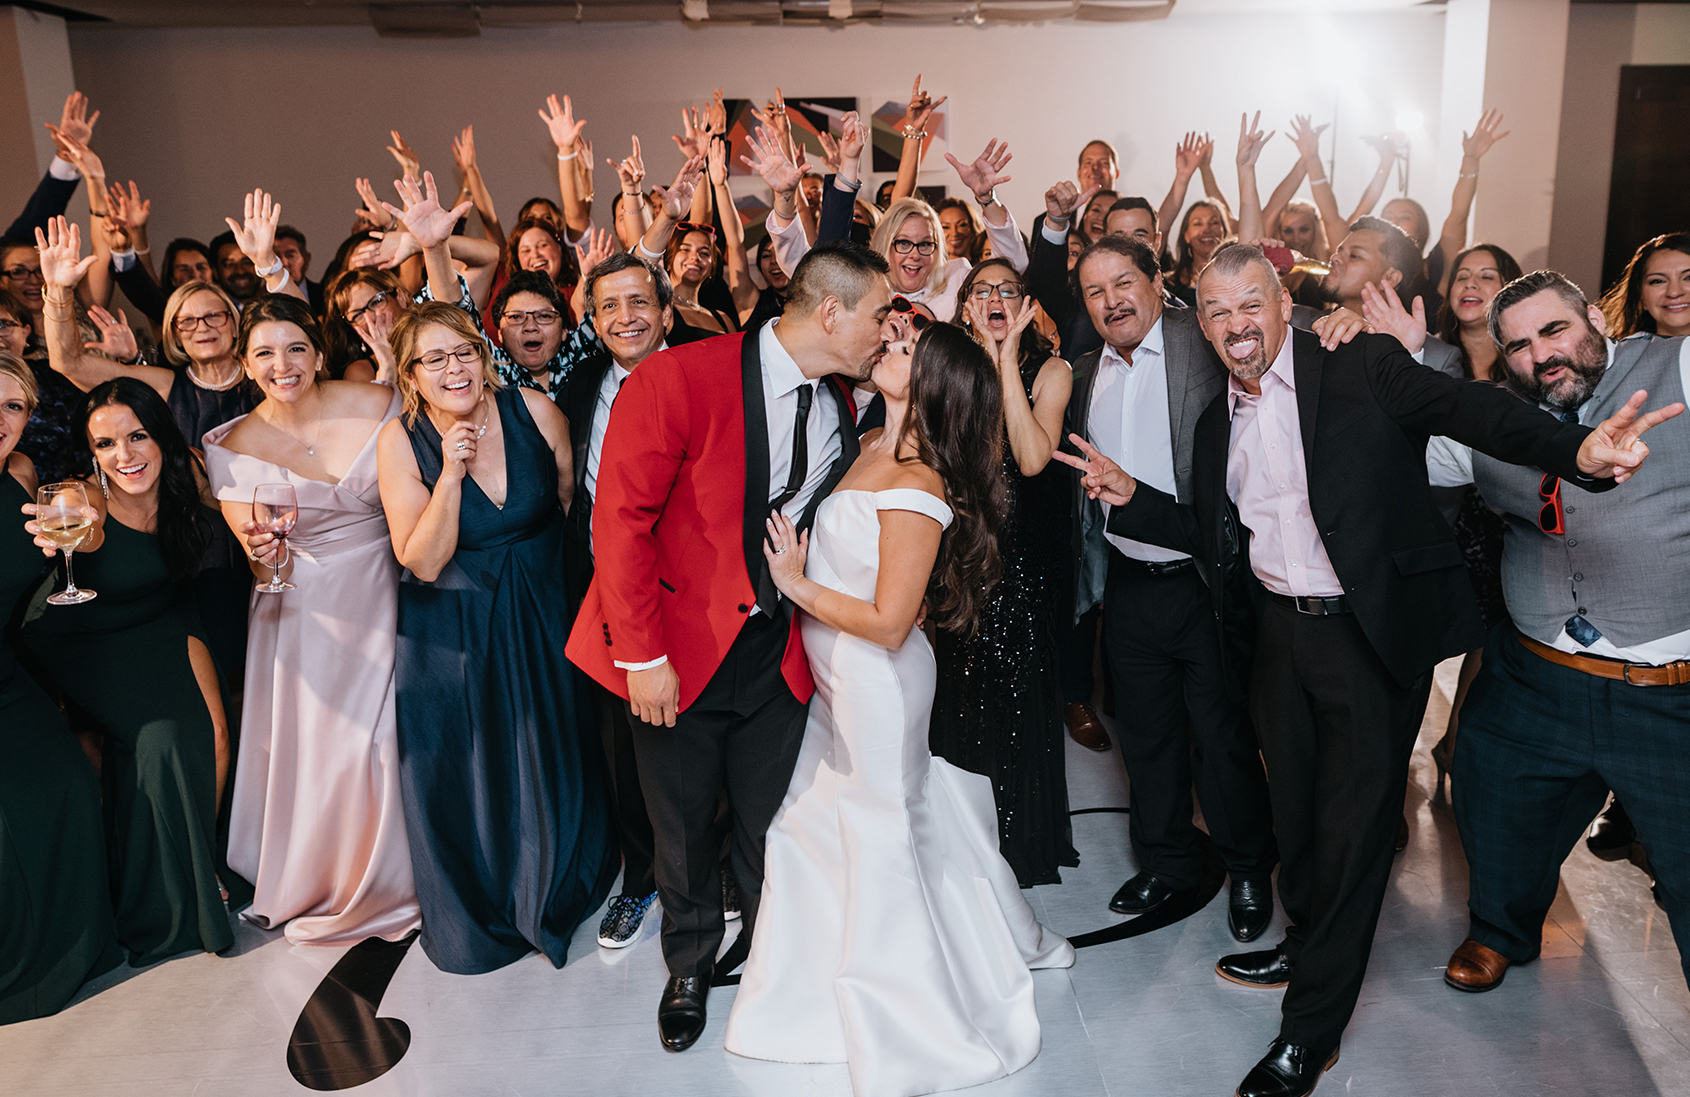 The bride and groom kiss on the dance floor with their wedding guests all behind them.